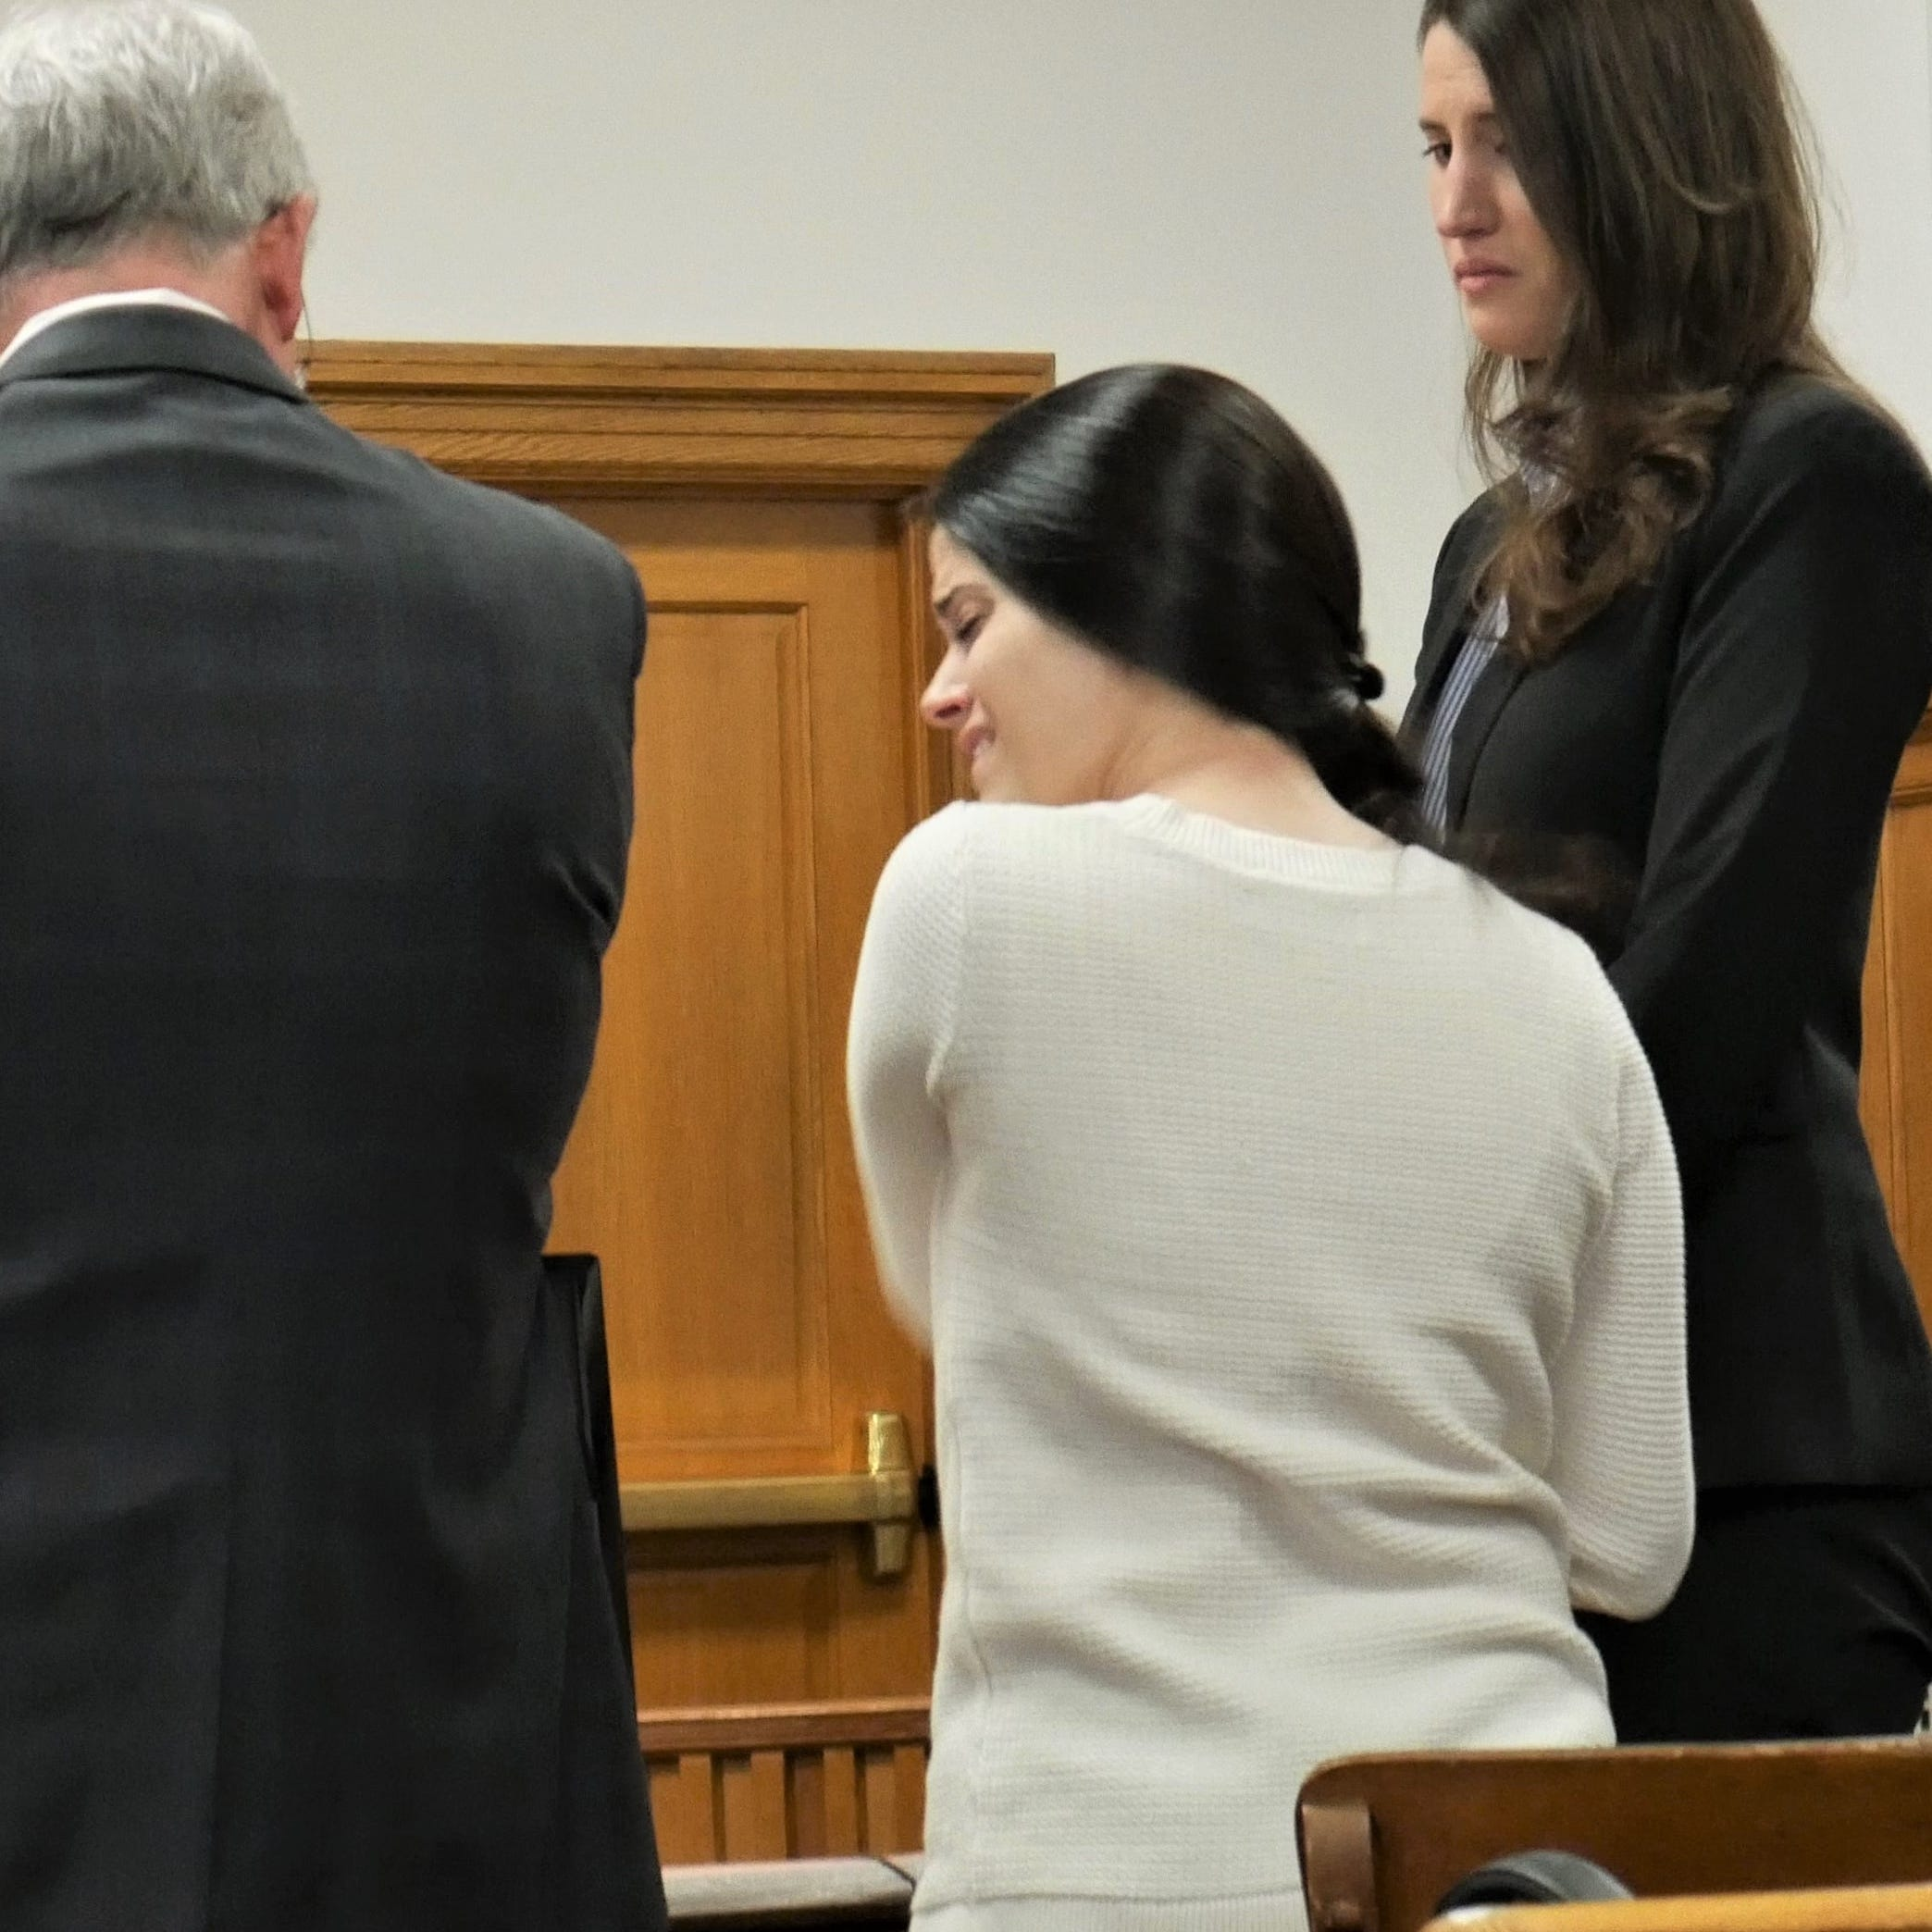 Nicole Addimando sentencing pushed back to June 10